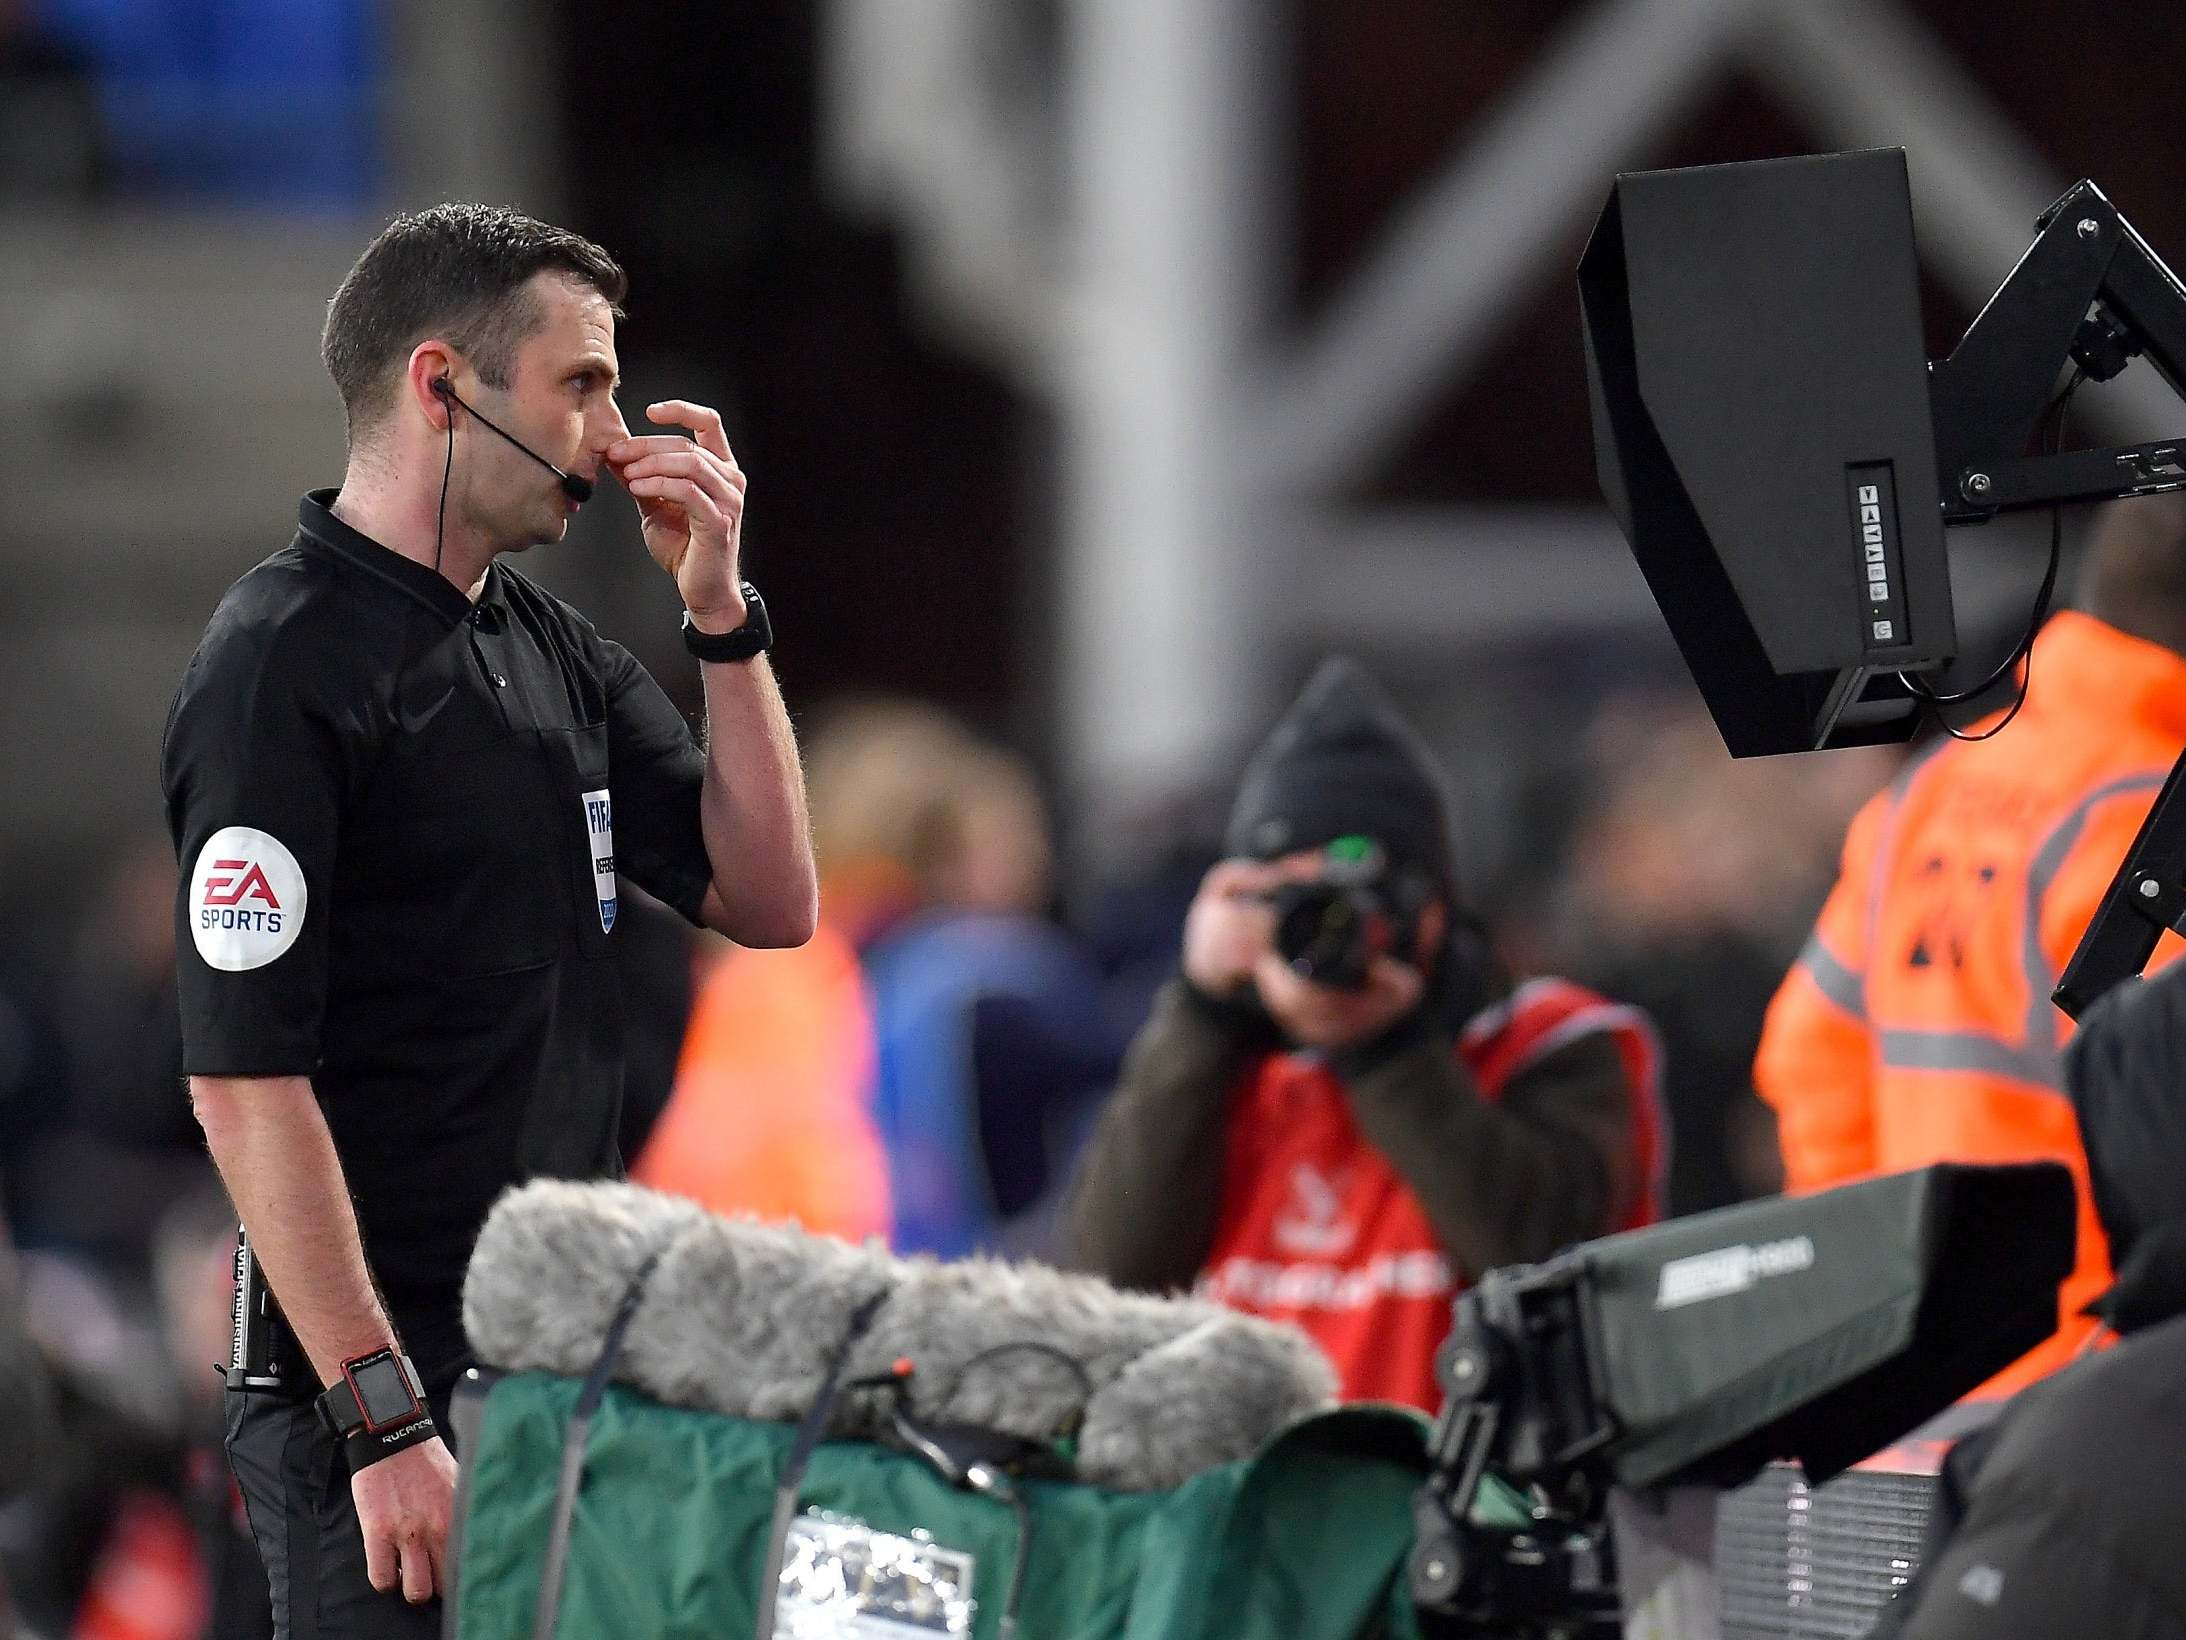 Premier League referees told to use pitchside VAR monitors for red cards